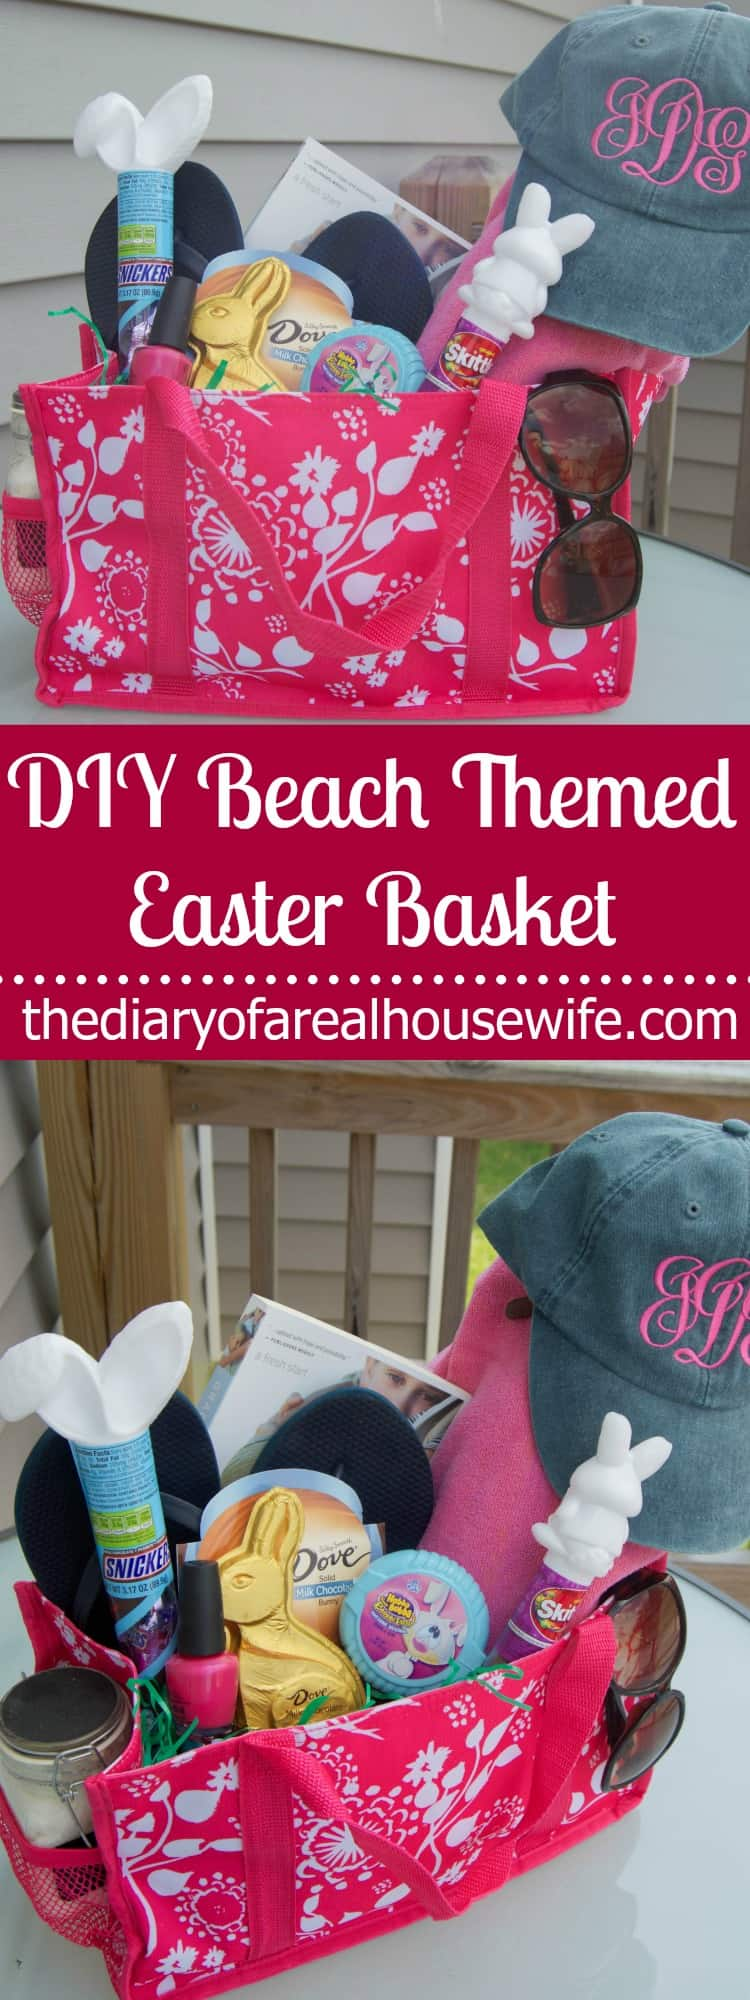 Beach themed easter basket the diary of a real housewife for What day does easter fall on this year